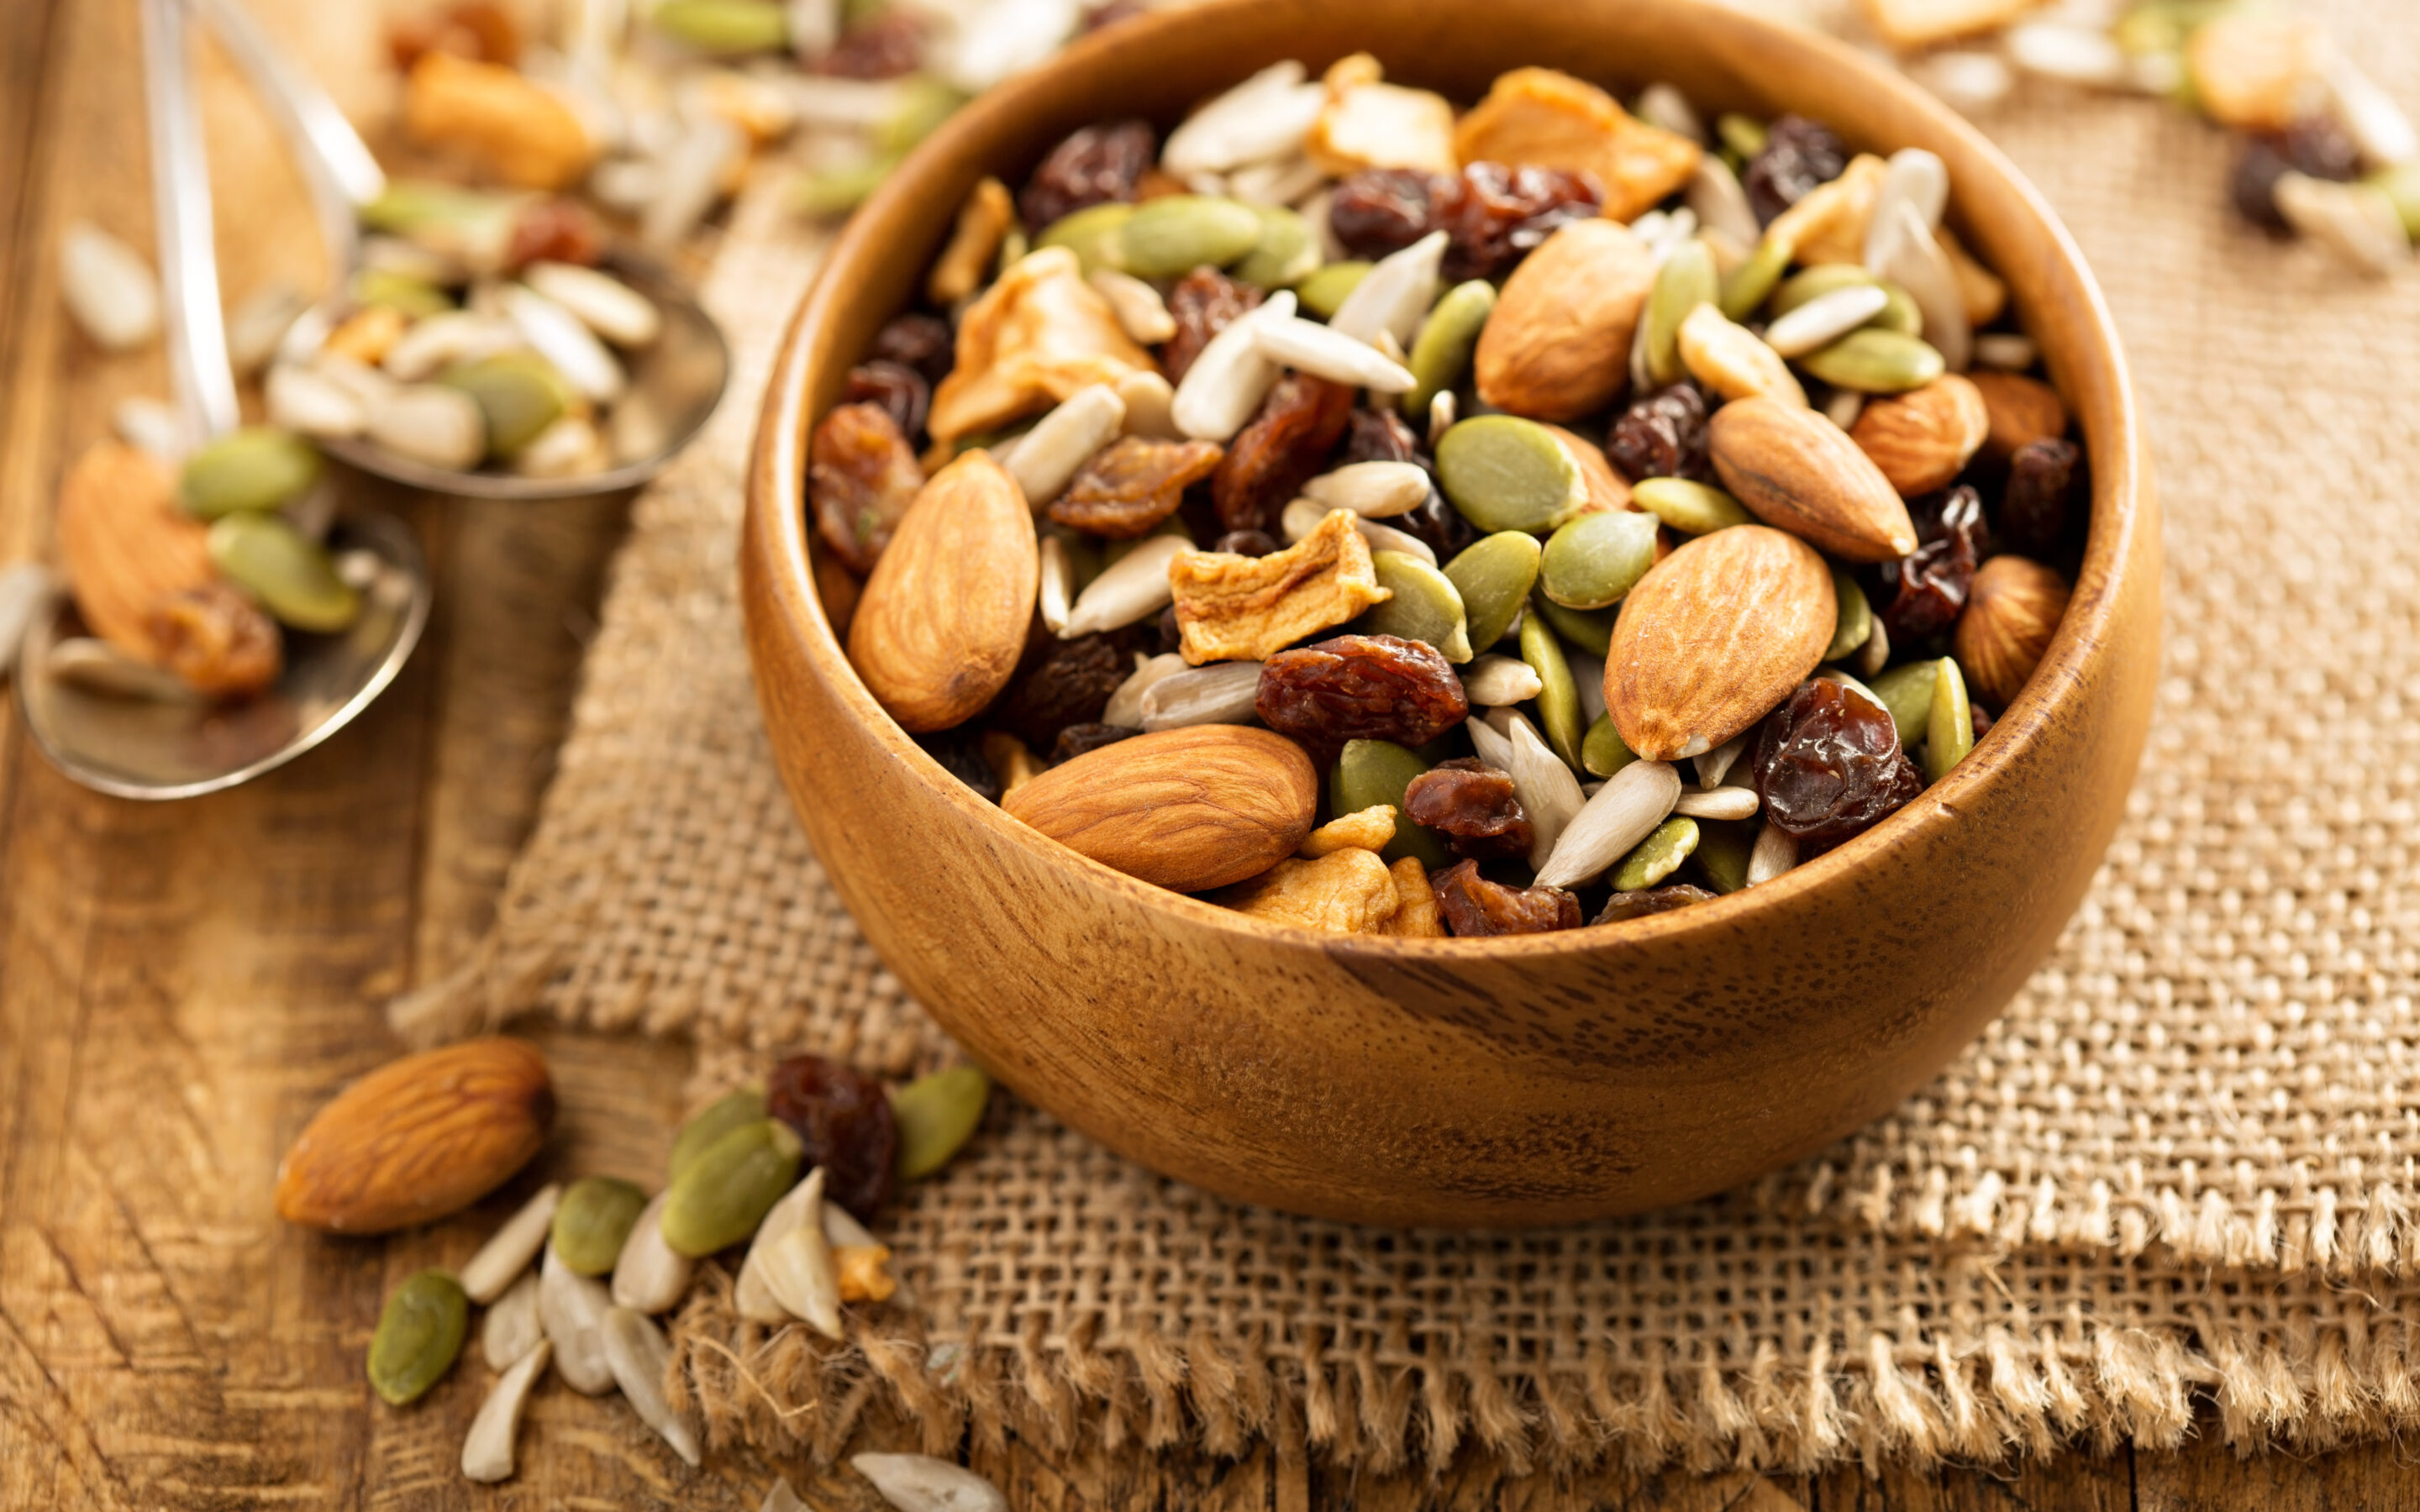 Bowl of Healthy Homemade Trail Mix